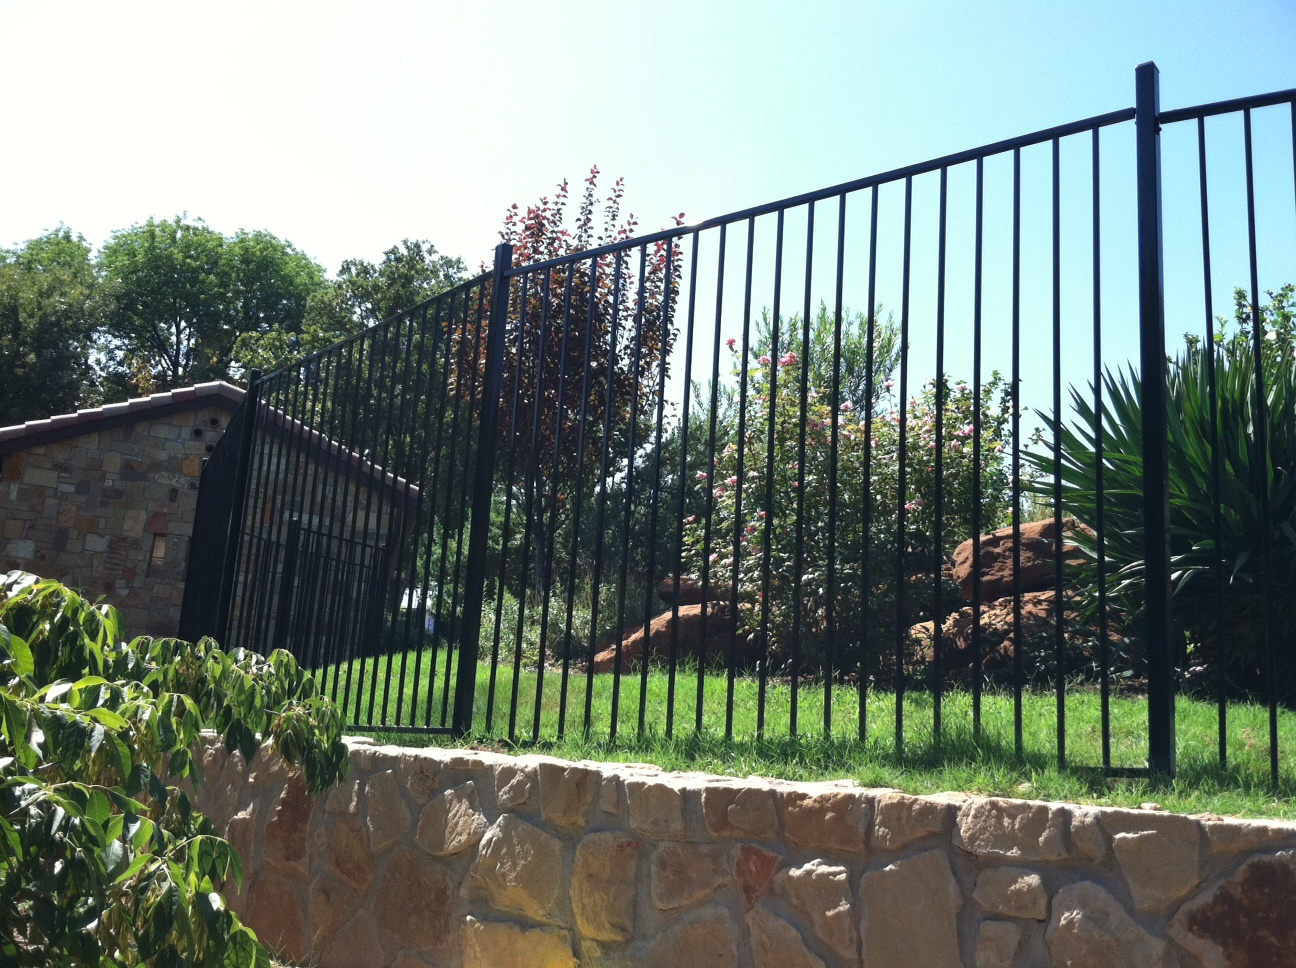 5 Ft Tall Metal Fence On Retaining Wall Fence Companies Gate Companies Lifetime Fence Company Frisco Fort Worth Denton Lewisville